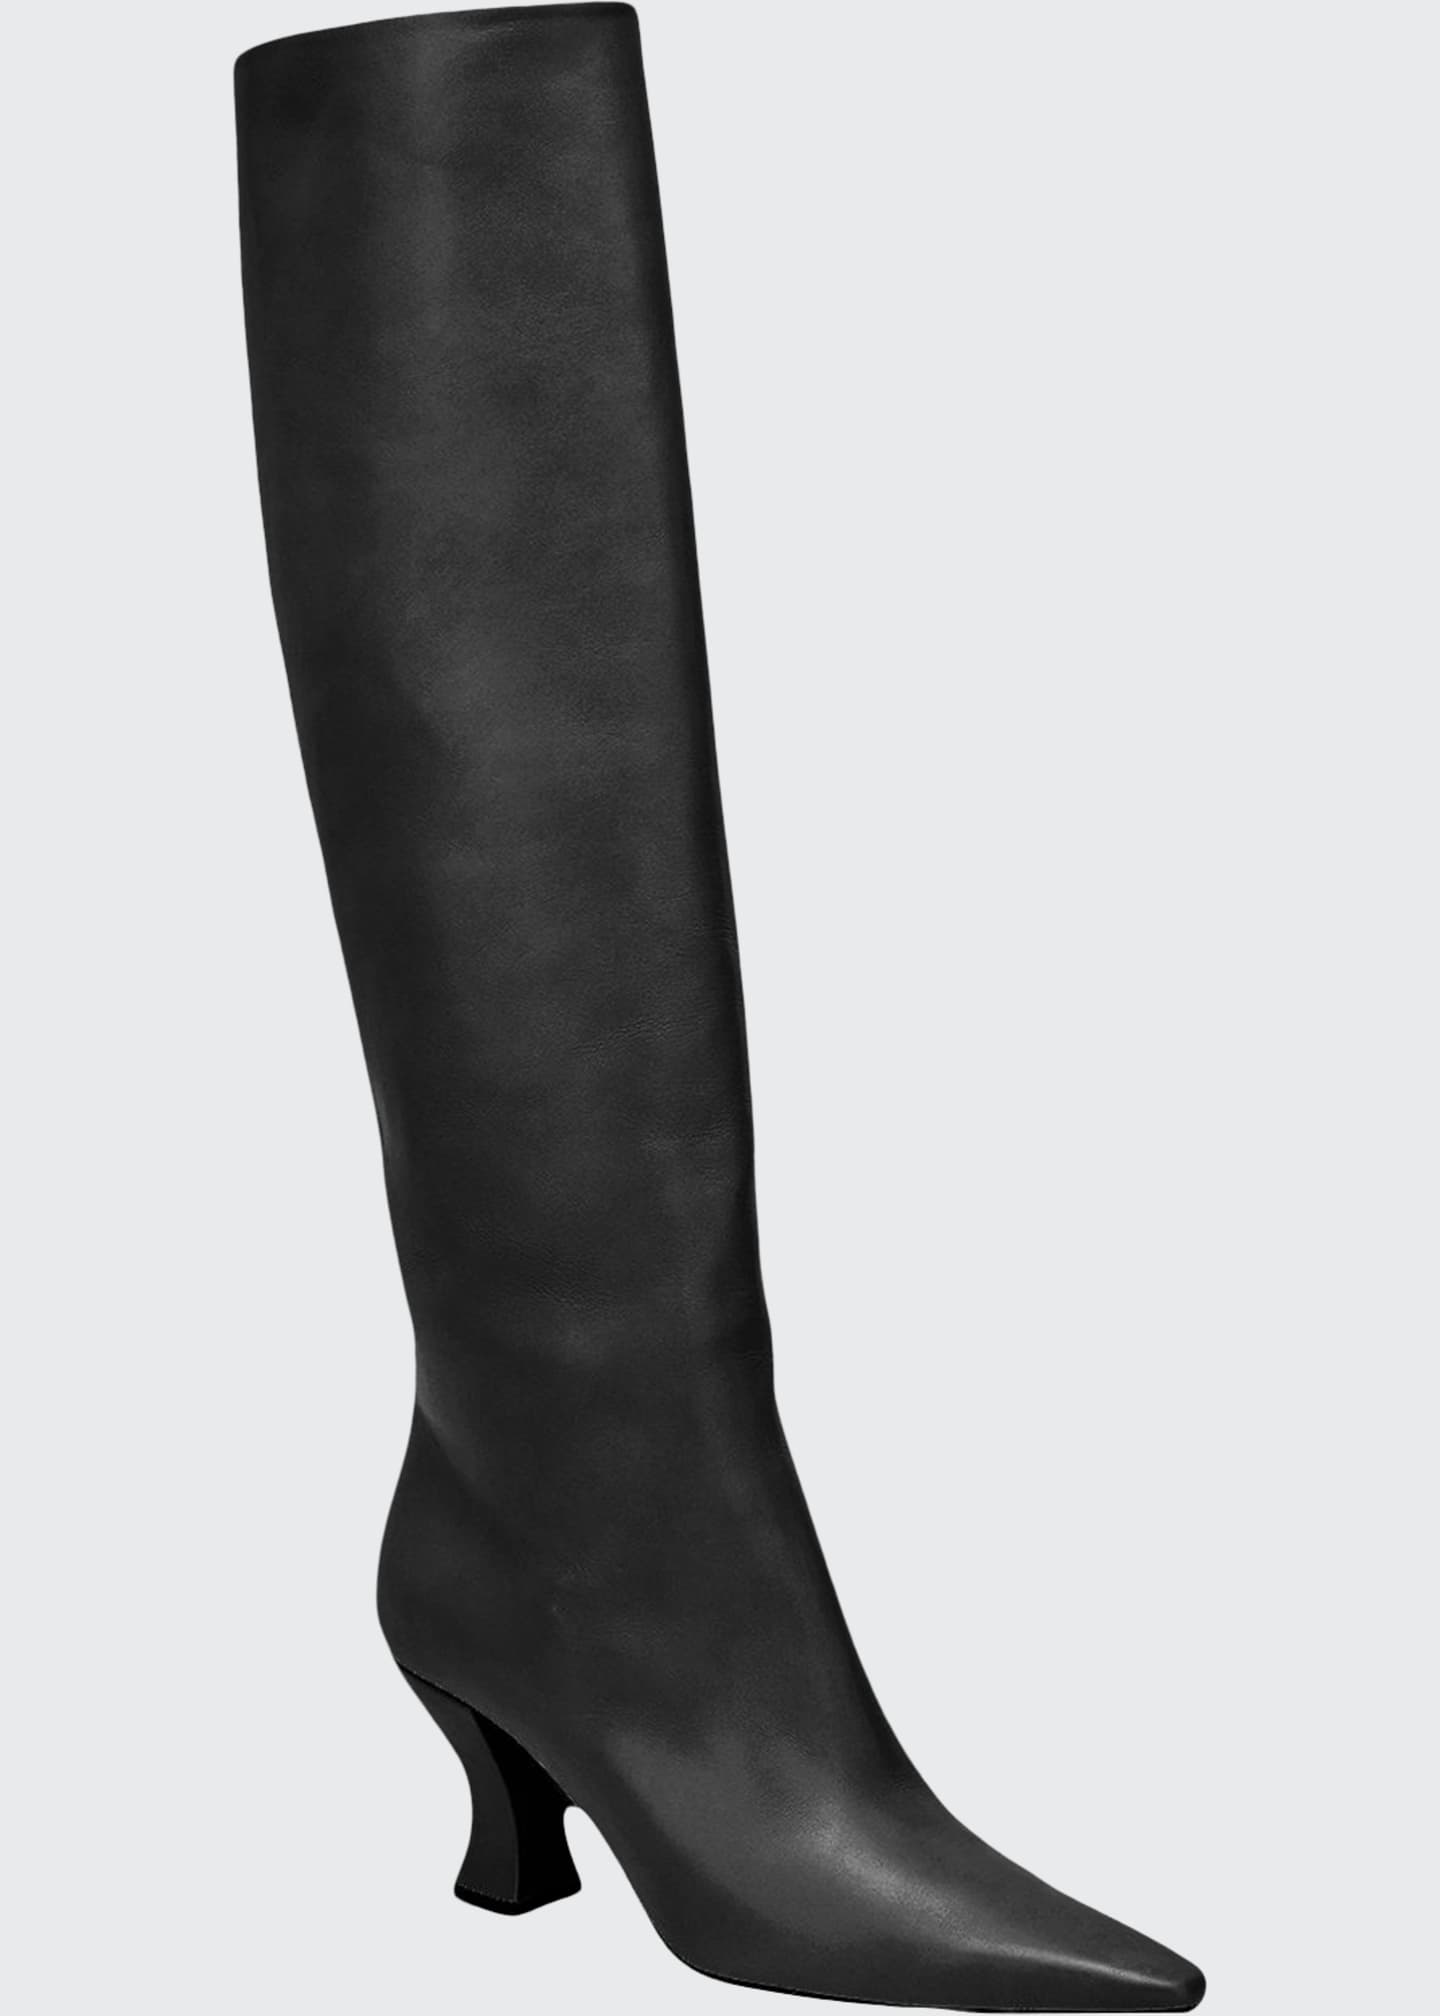 Bottega Veneta Cloud Calf Leather Tall Boots